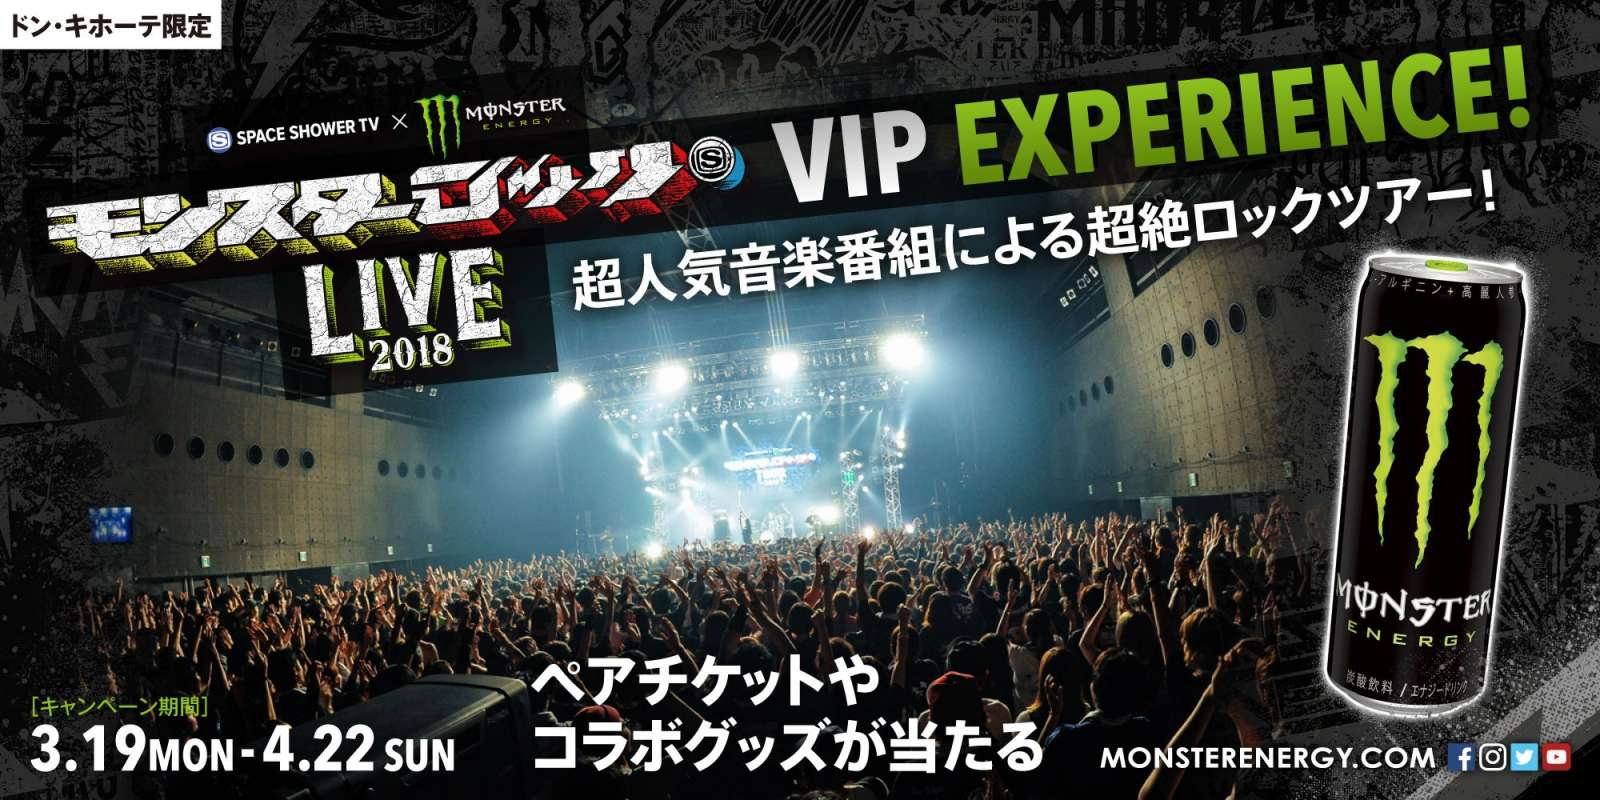 Graphic for Monster Rock Live 2018 Promo at Don Quijote (national SM chain)